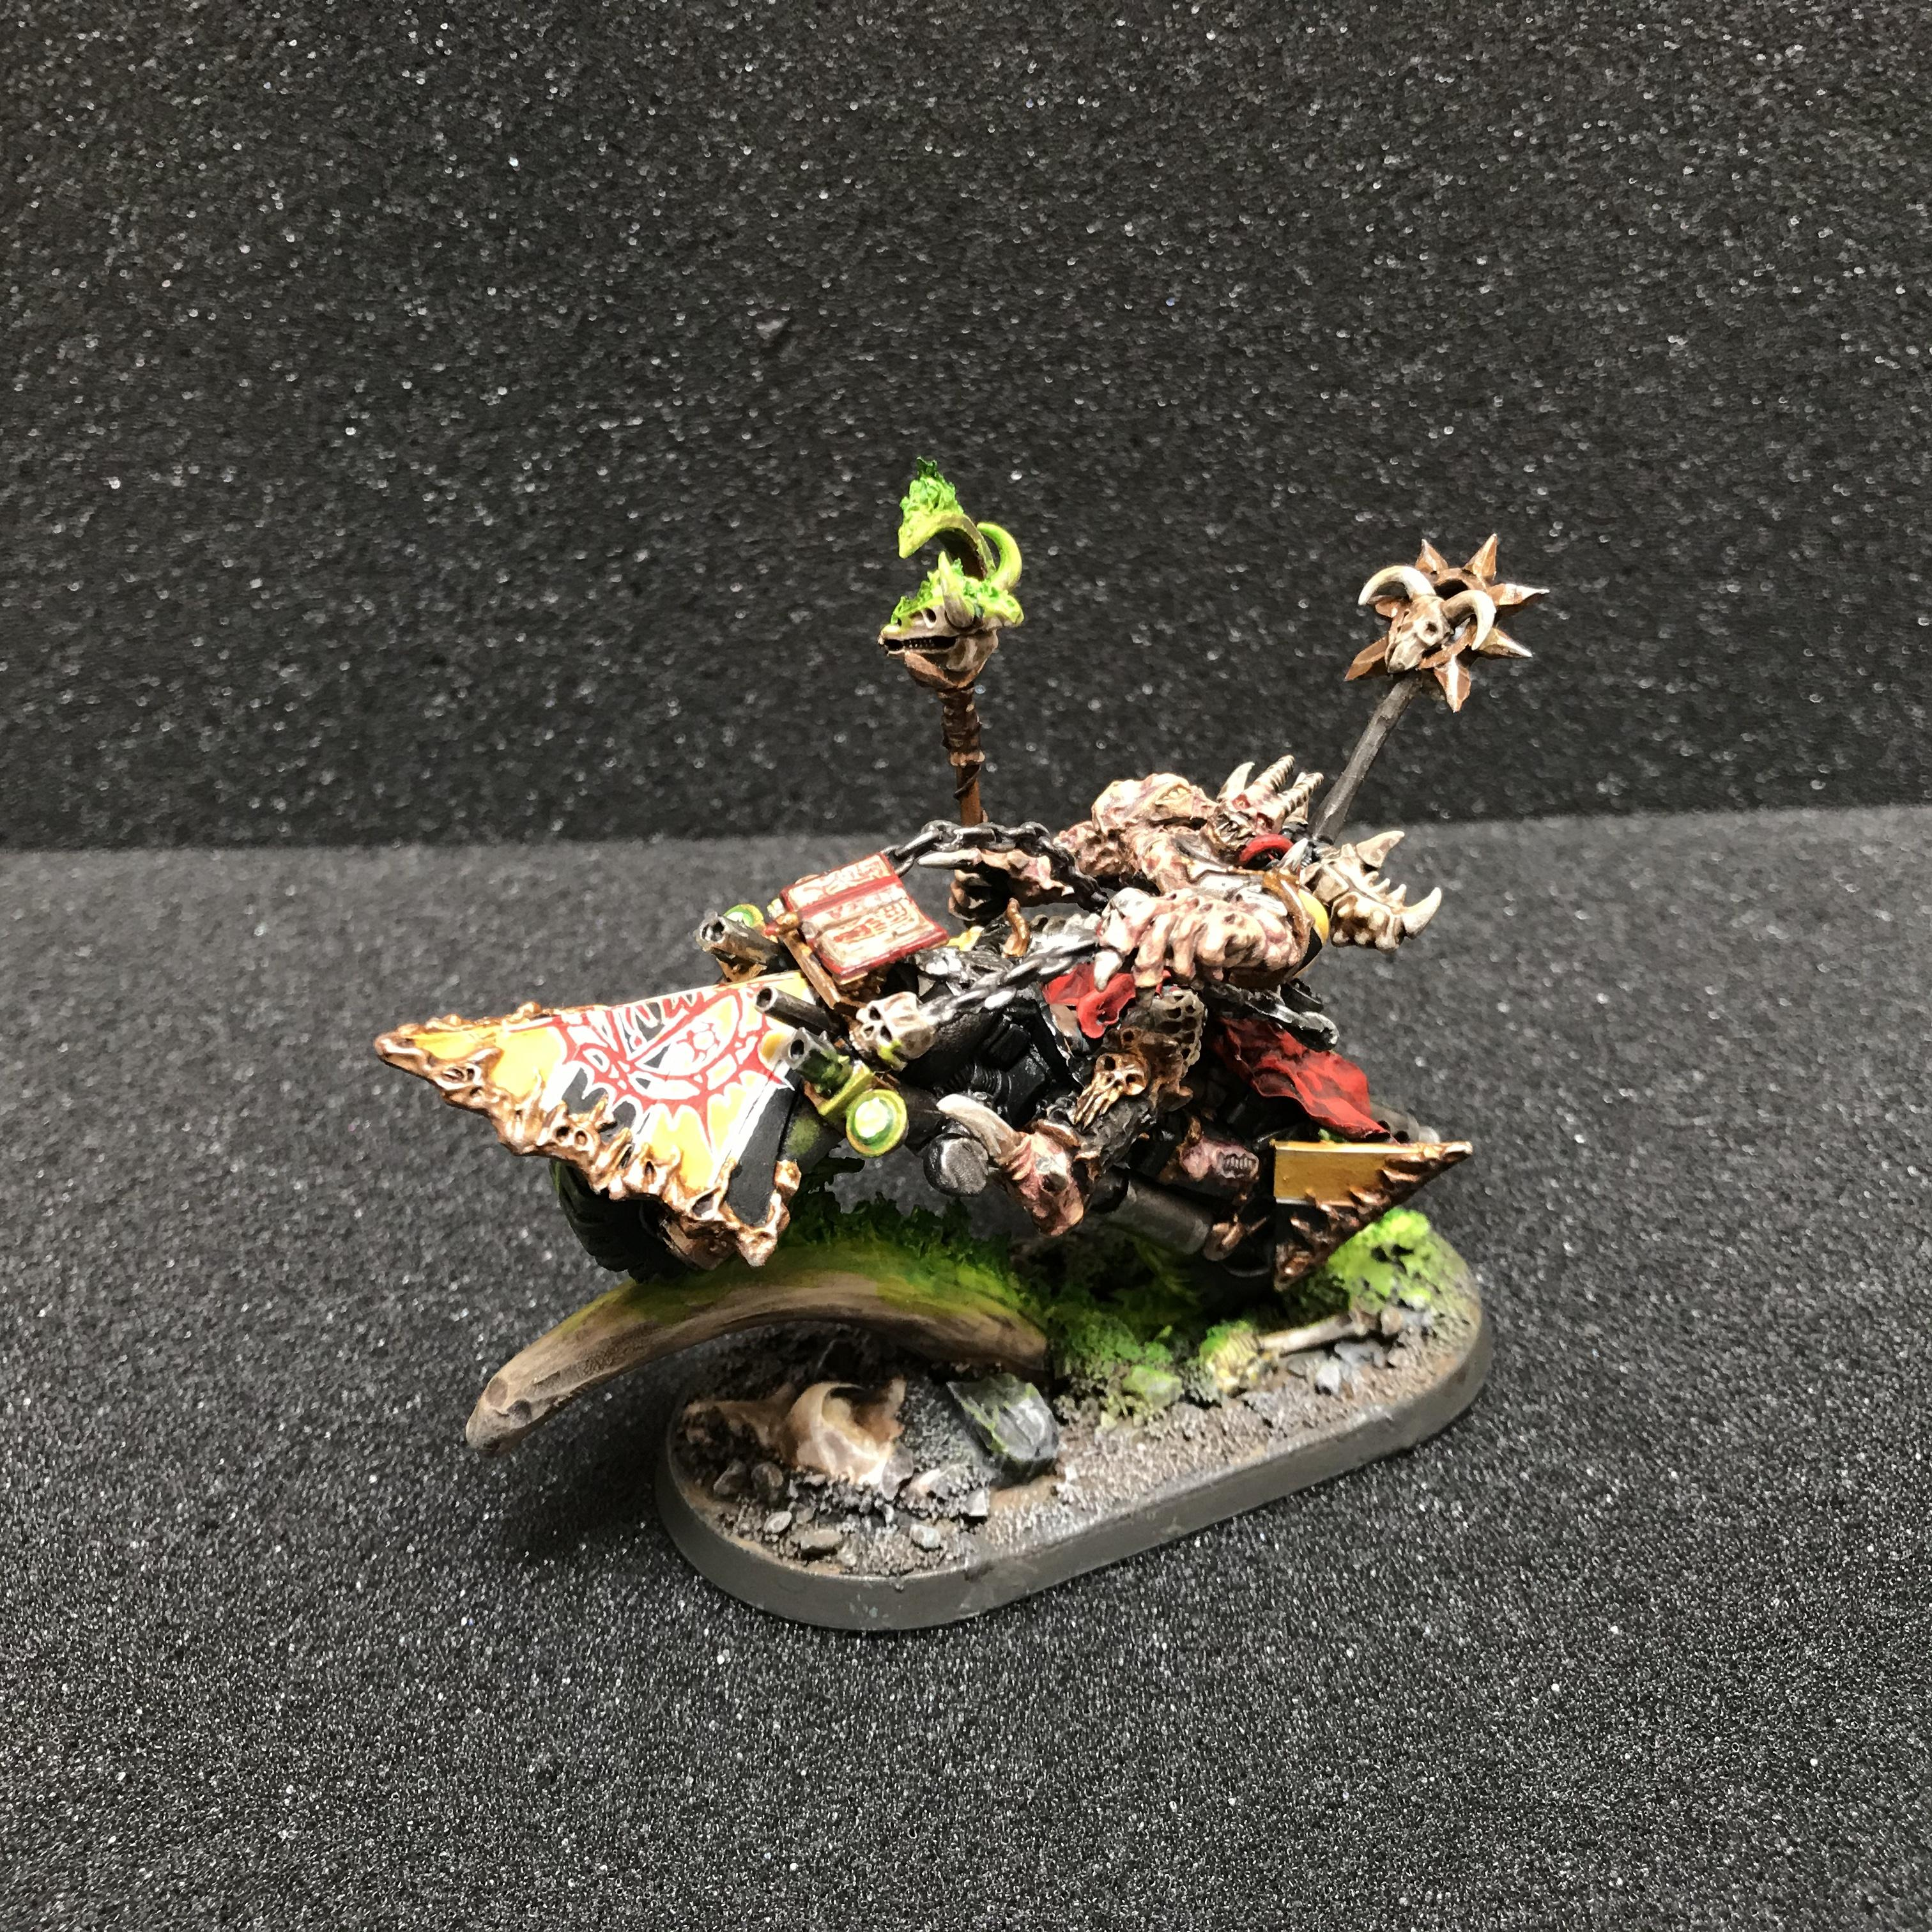 Bike, Conversion, Greenstuff, Iron Warriors, Kitbashed, Legend, Sorcerer